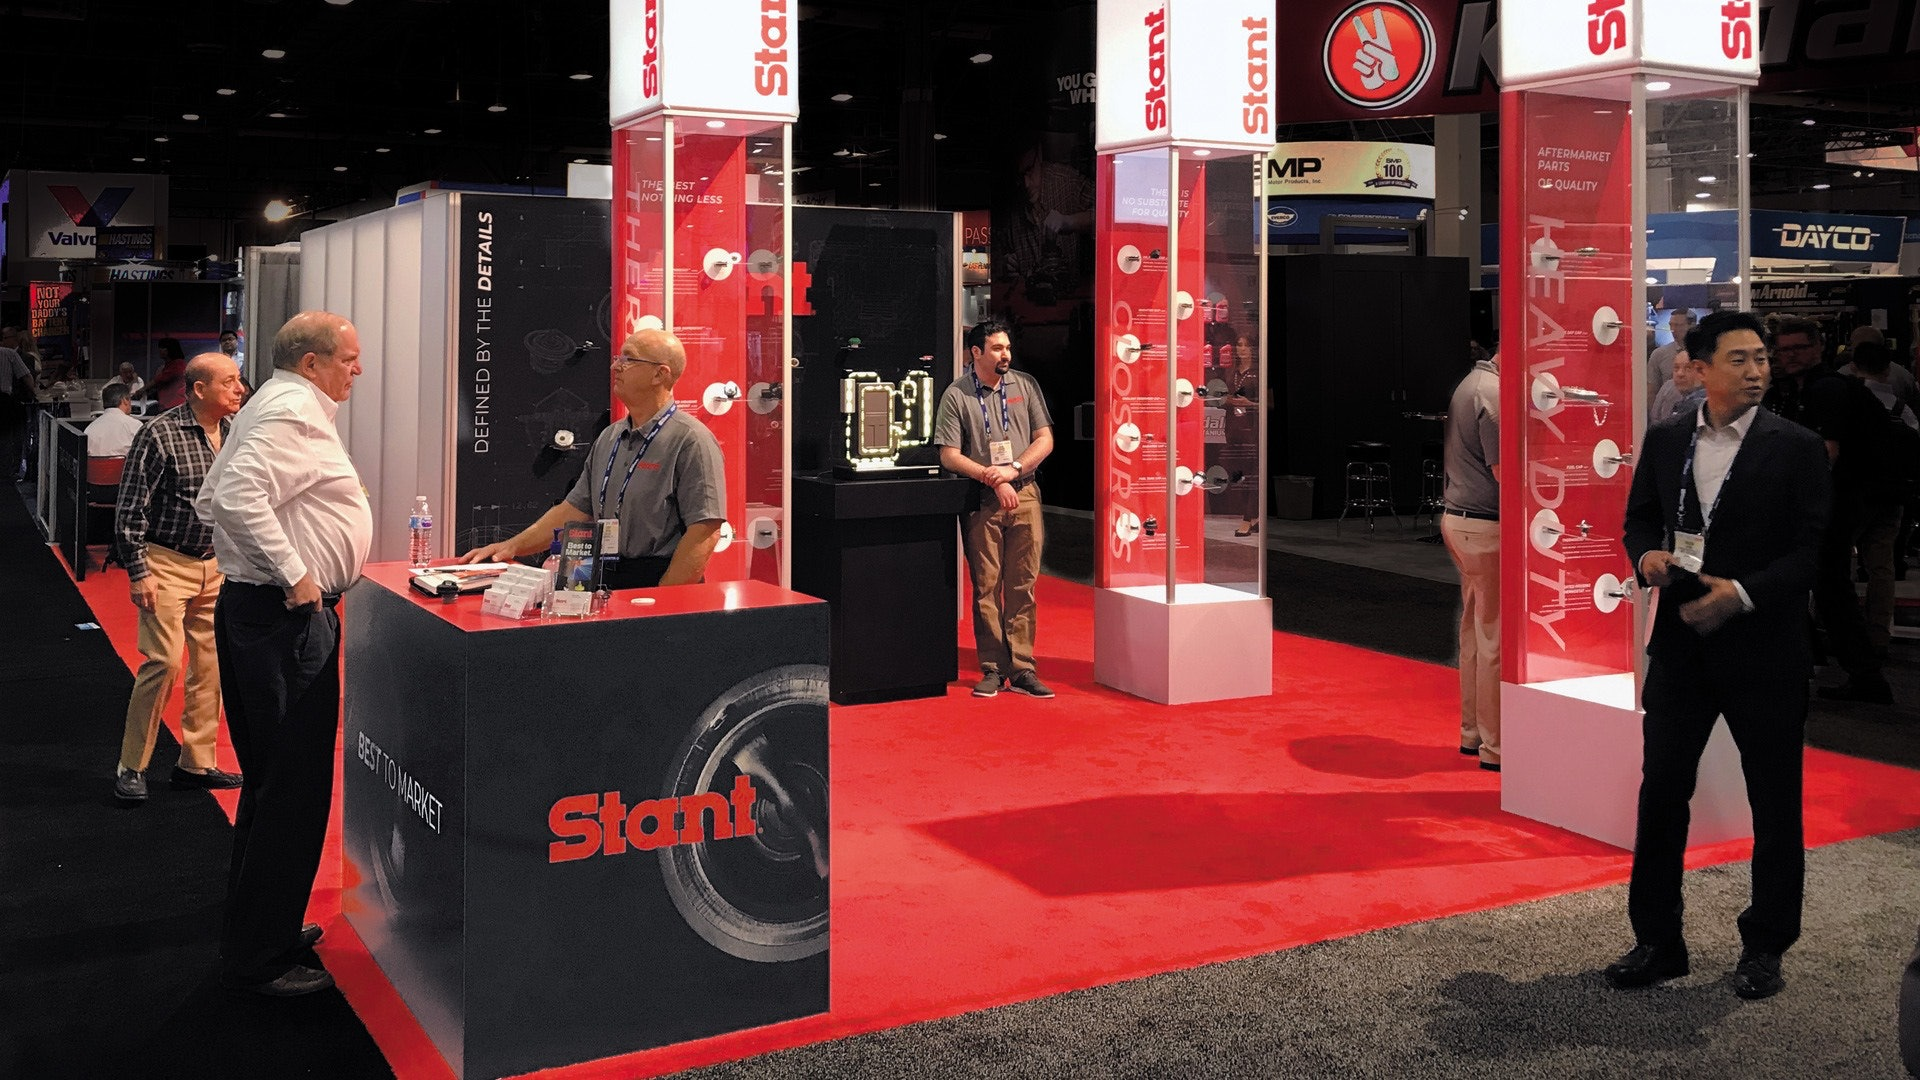 Automotive Trade Show Booth in Red